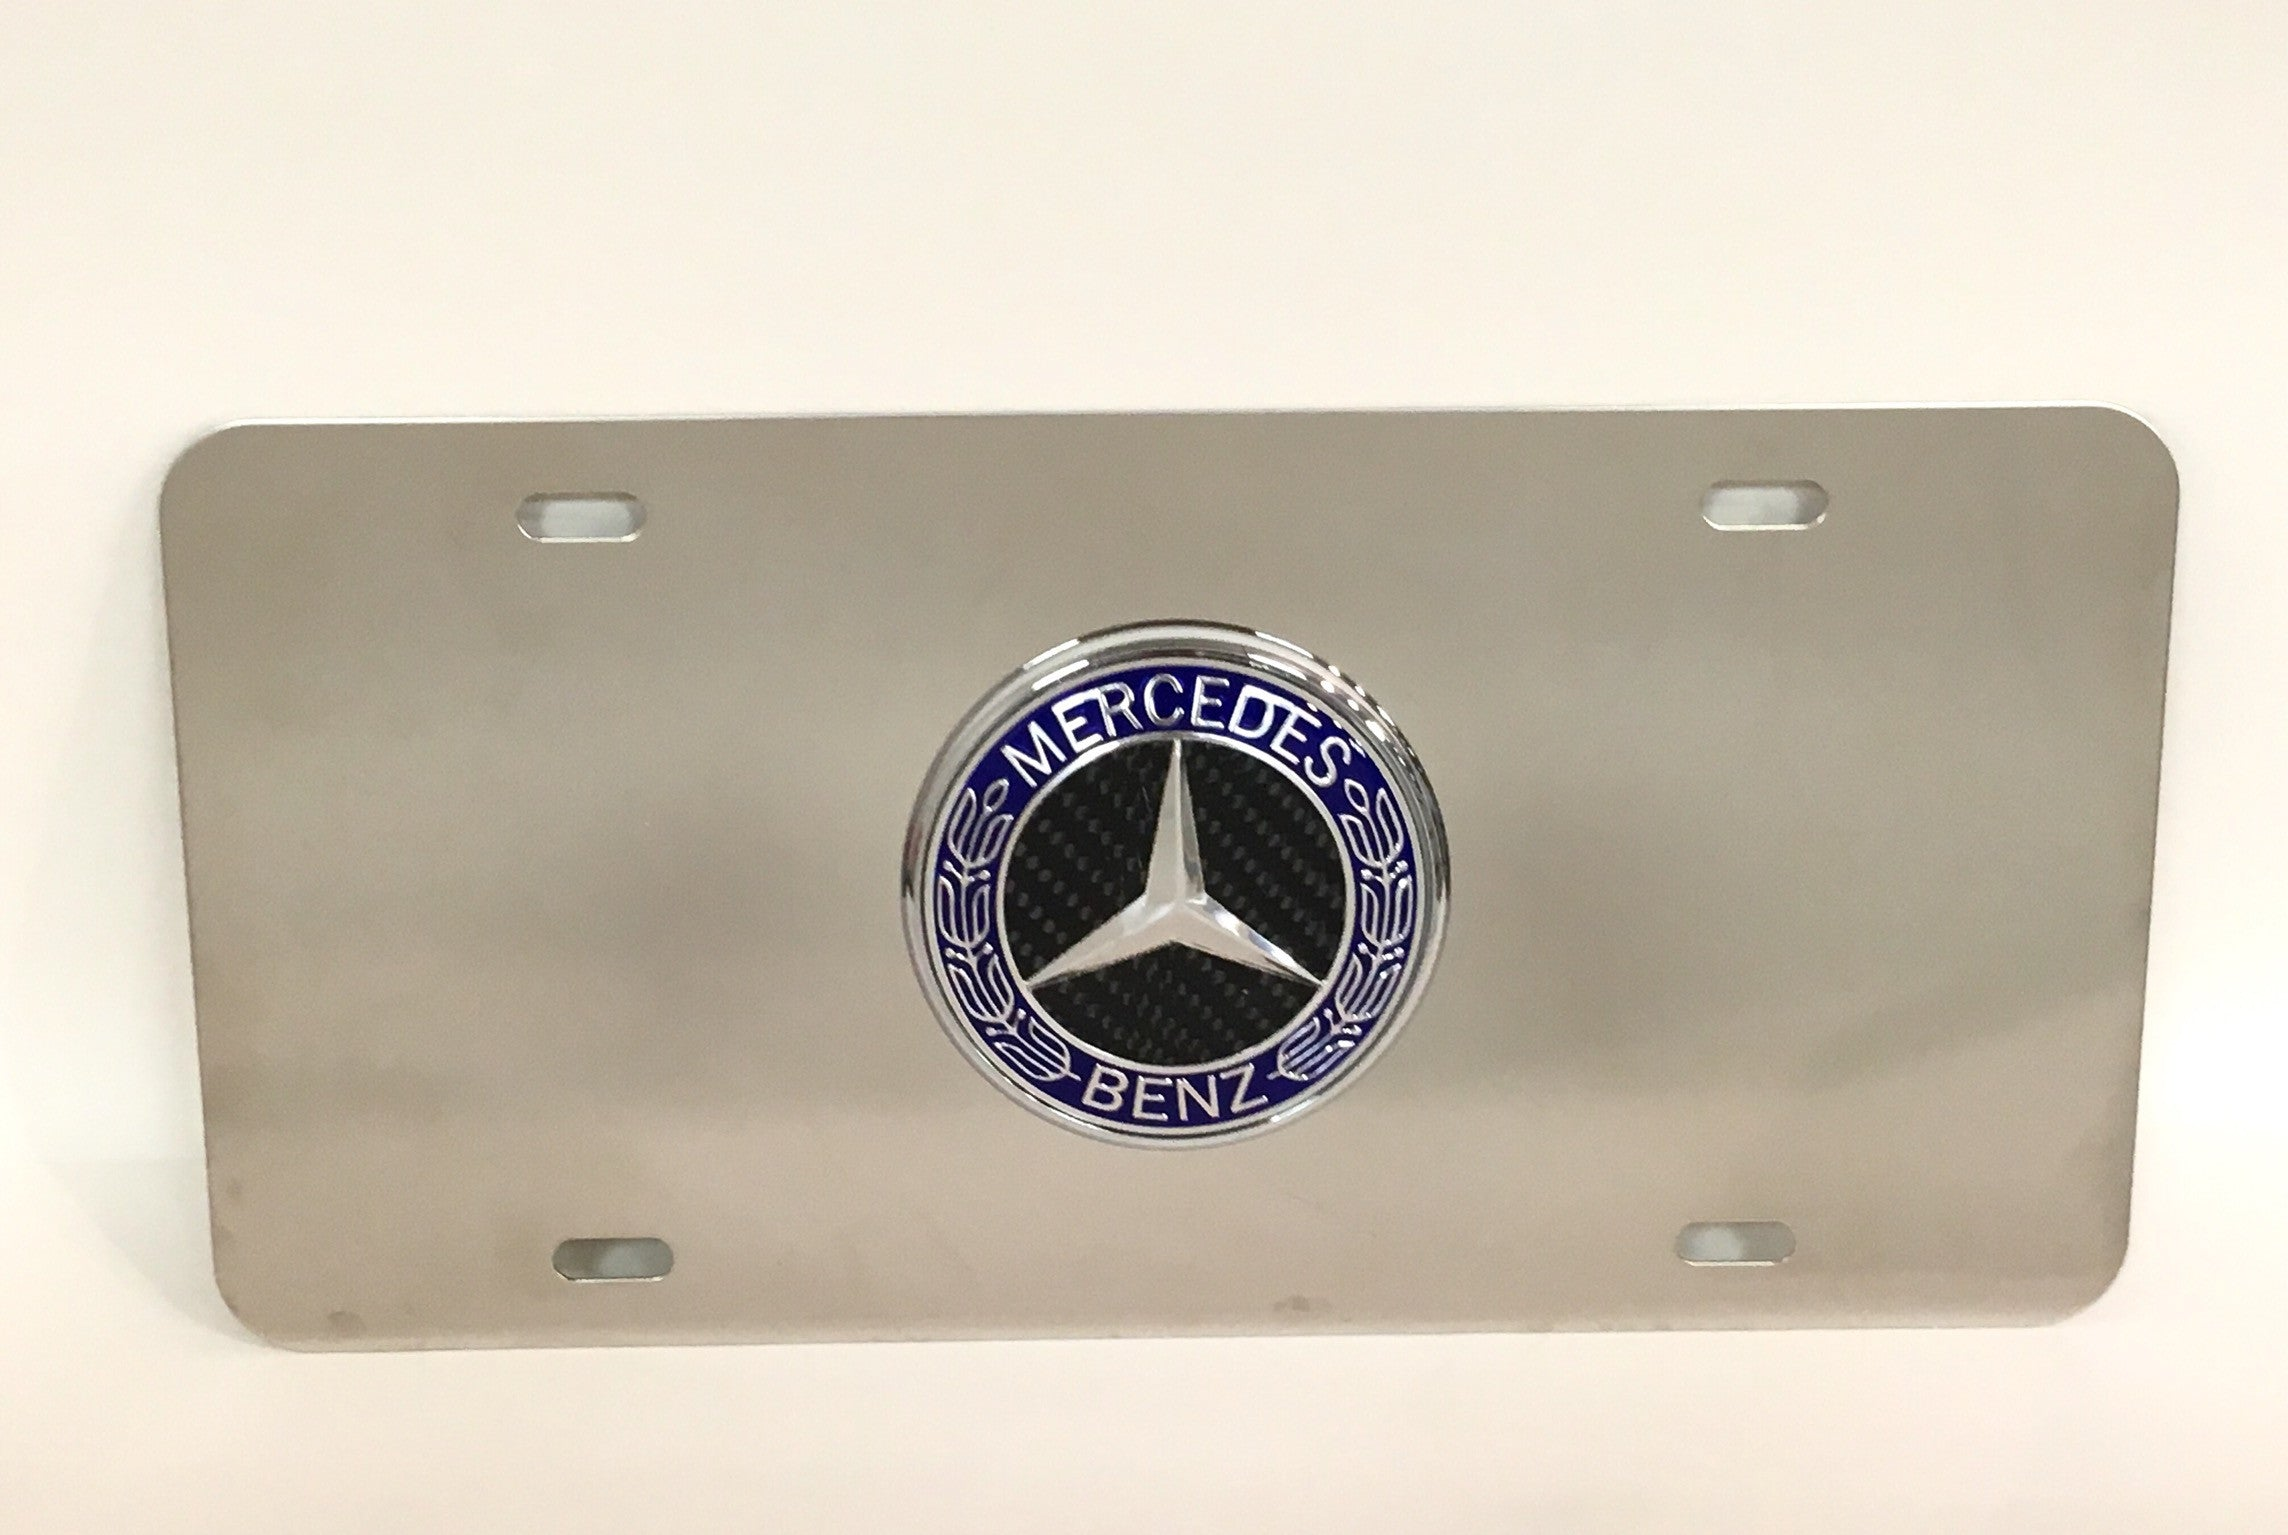 Mercedes Official Emblem Stainless Steel License Plate